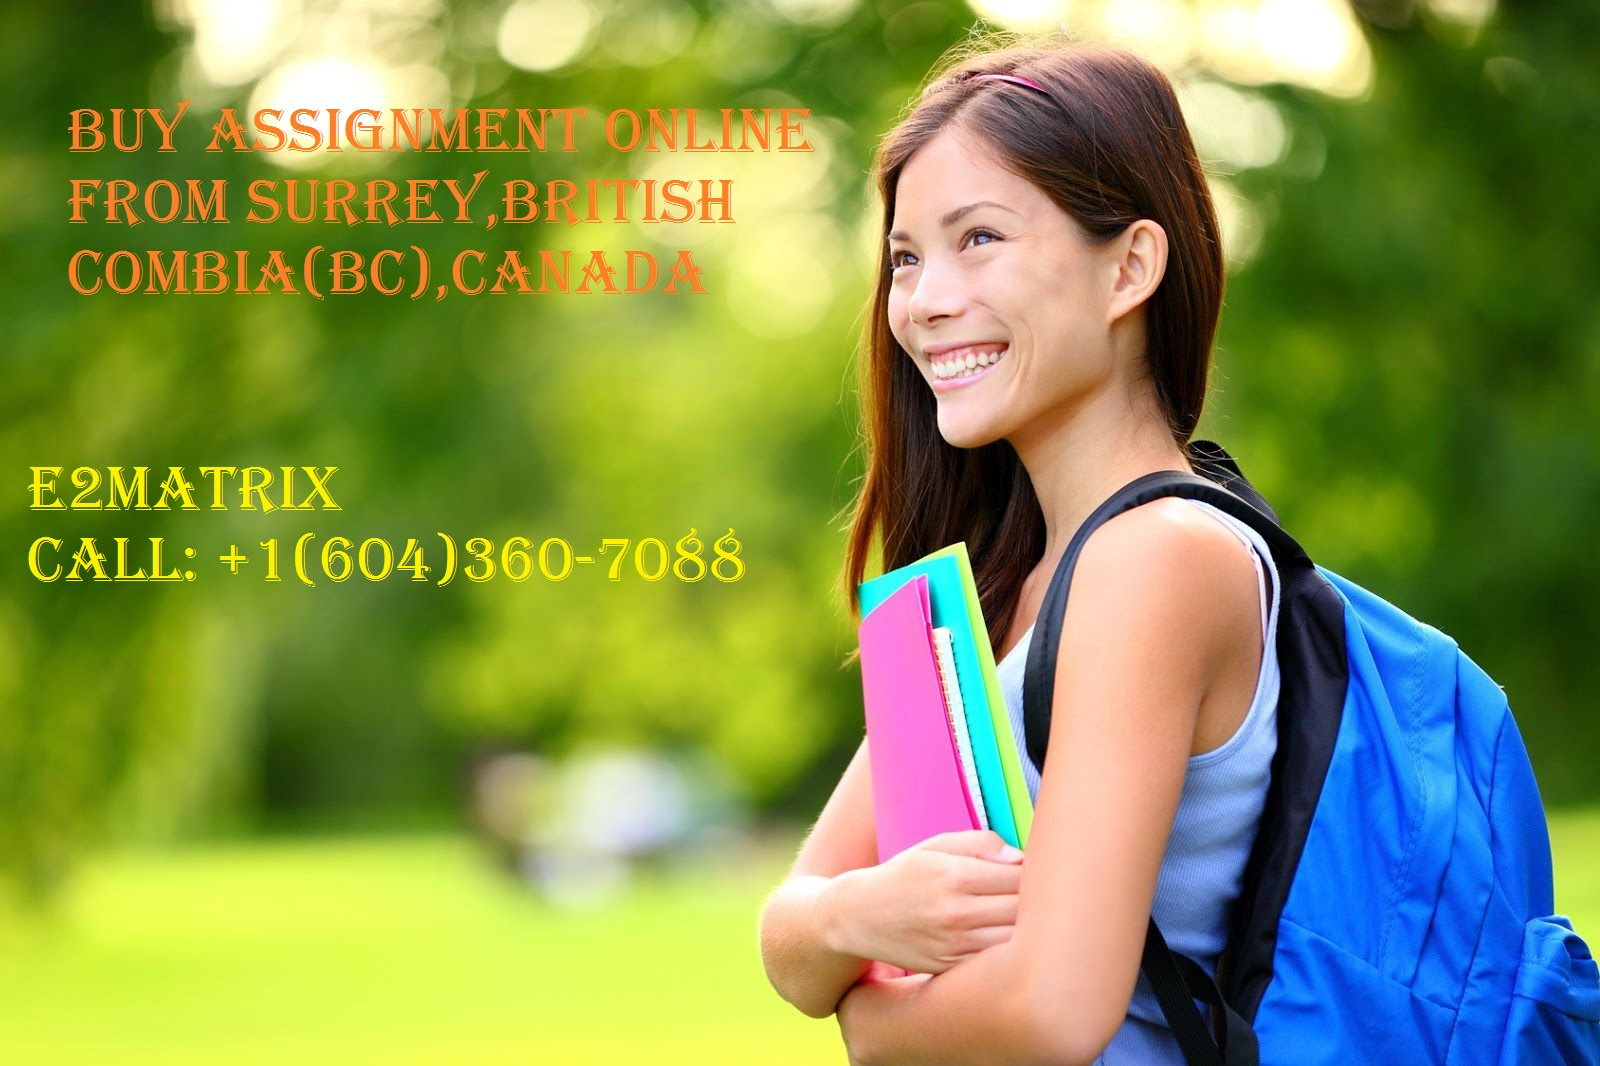 Online Assignment Writing Services In Canada Buy Assignment Online  Skilled Experts Will Provide You With Detailed Knowledge Of Your Assignment  So Every Student Can Buy Online Assignment From Surrey